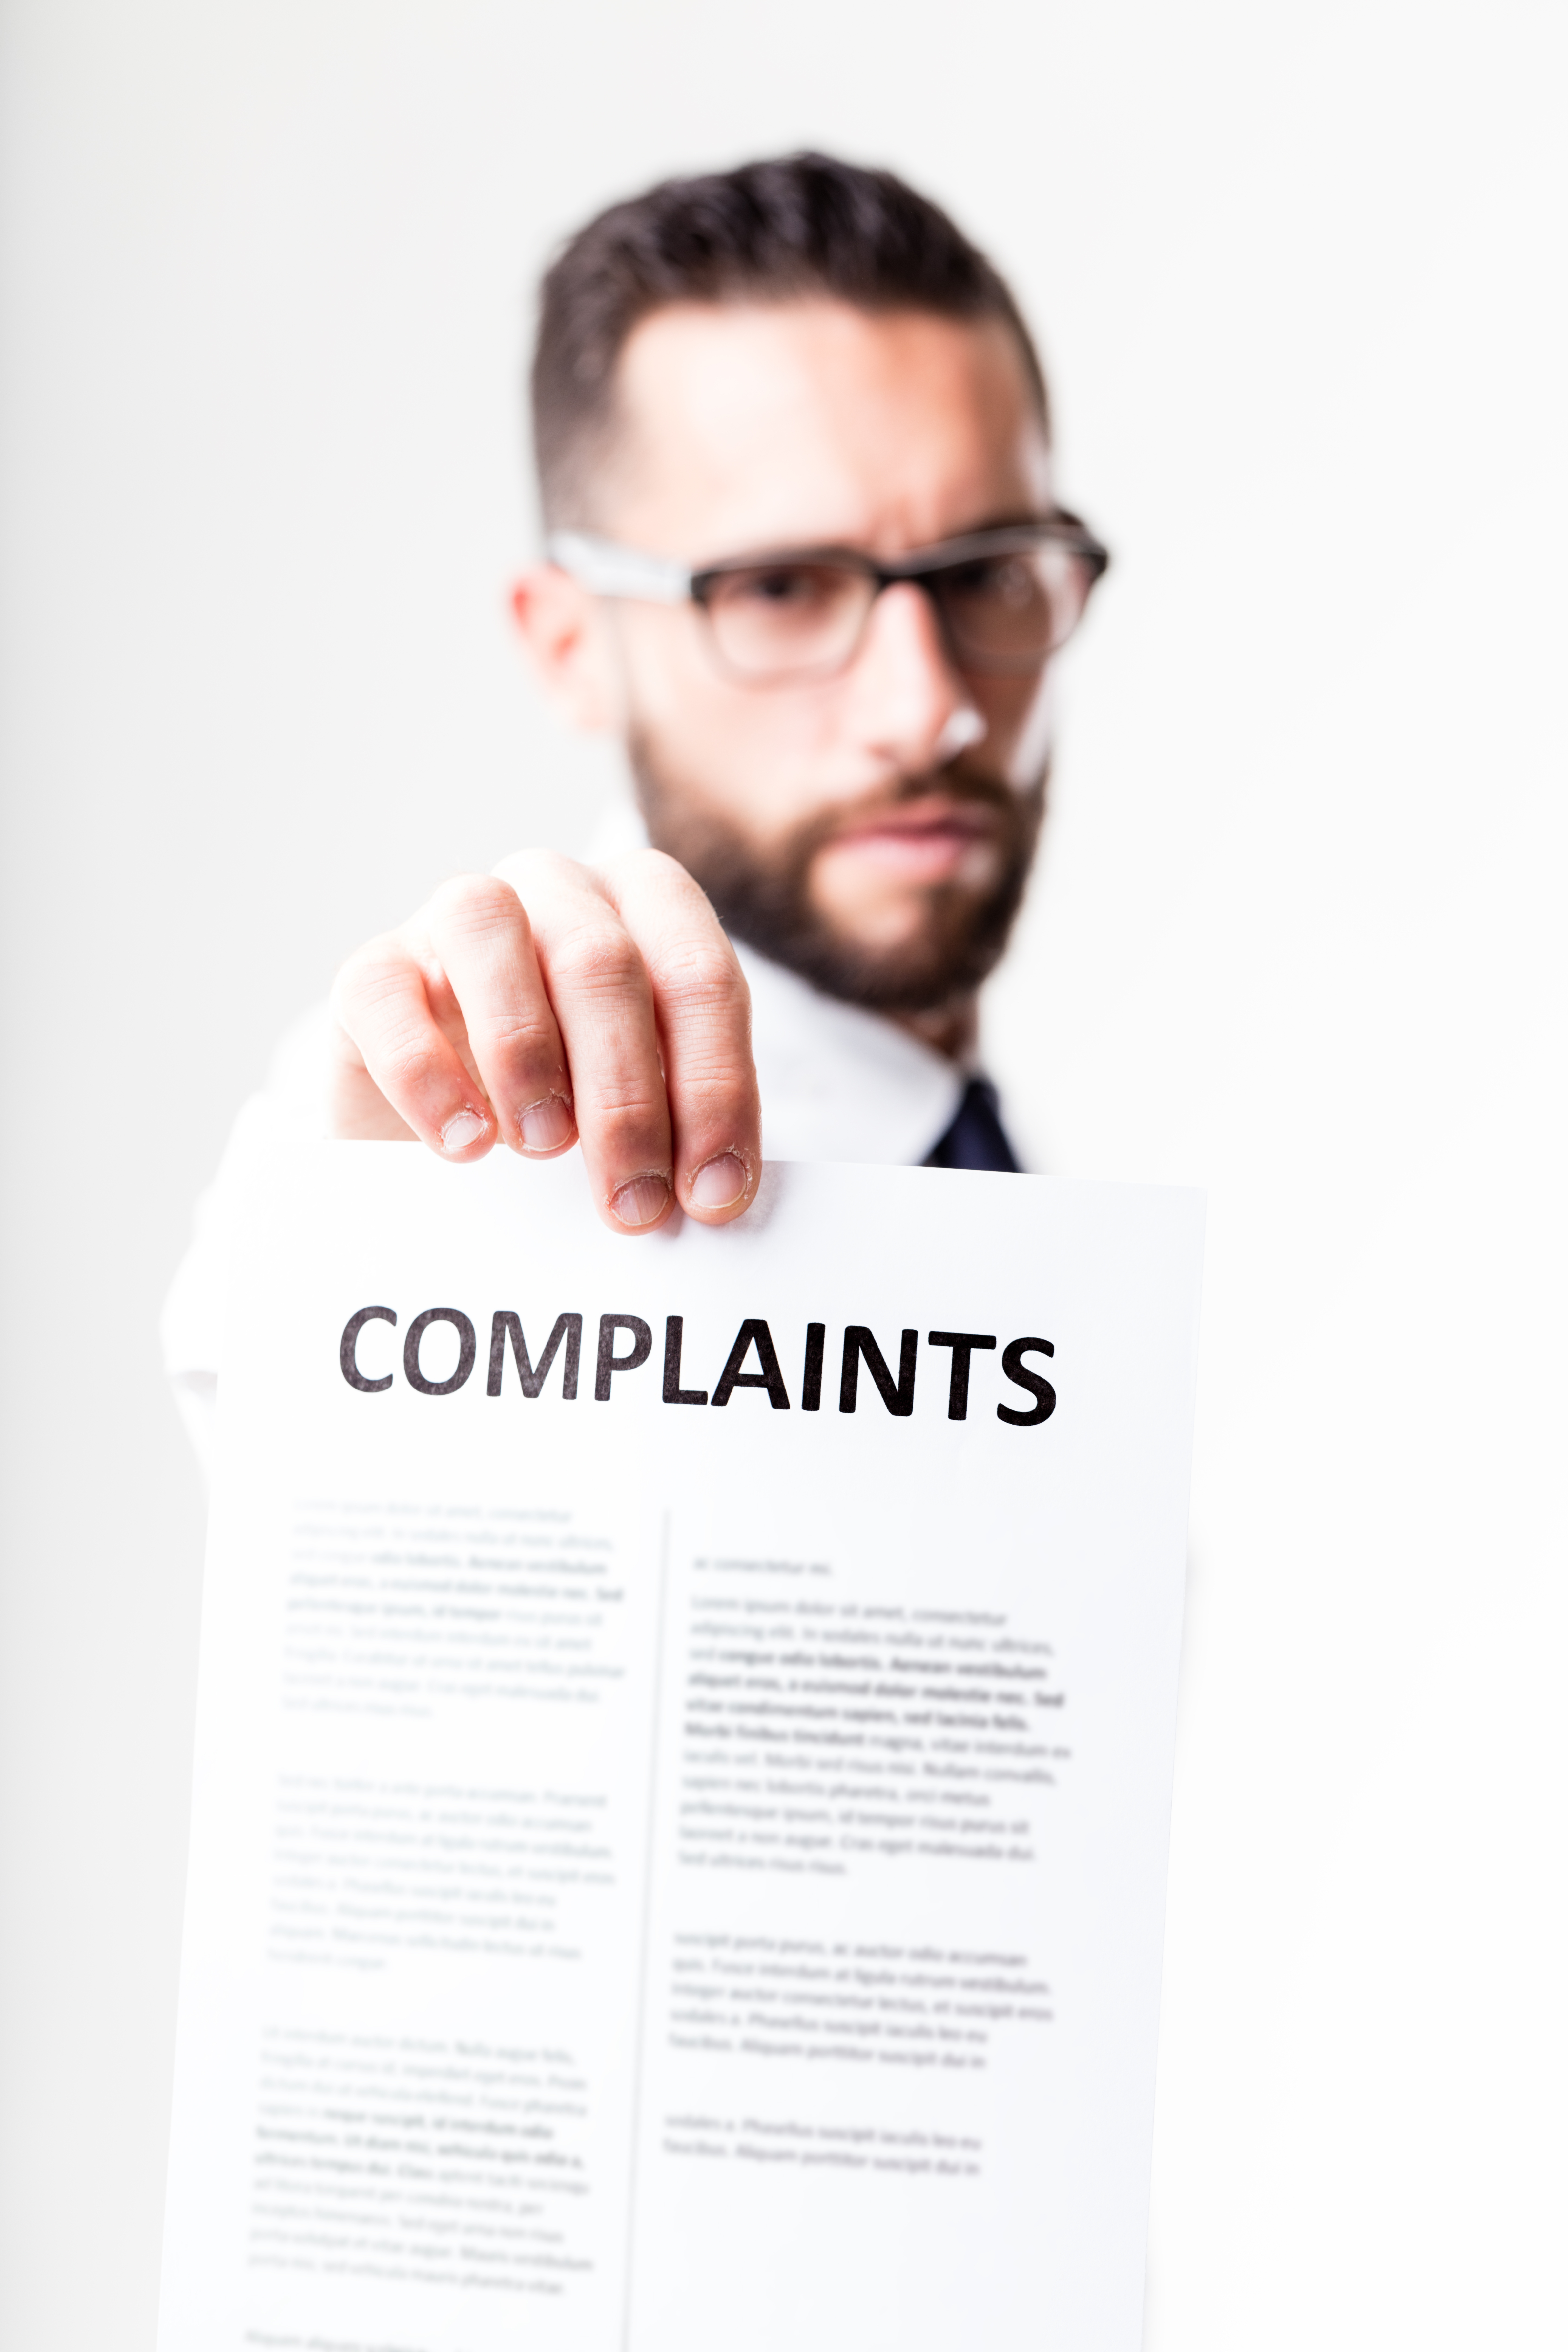 Theologian gives complaints